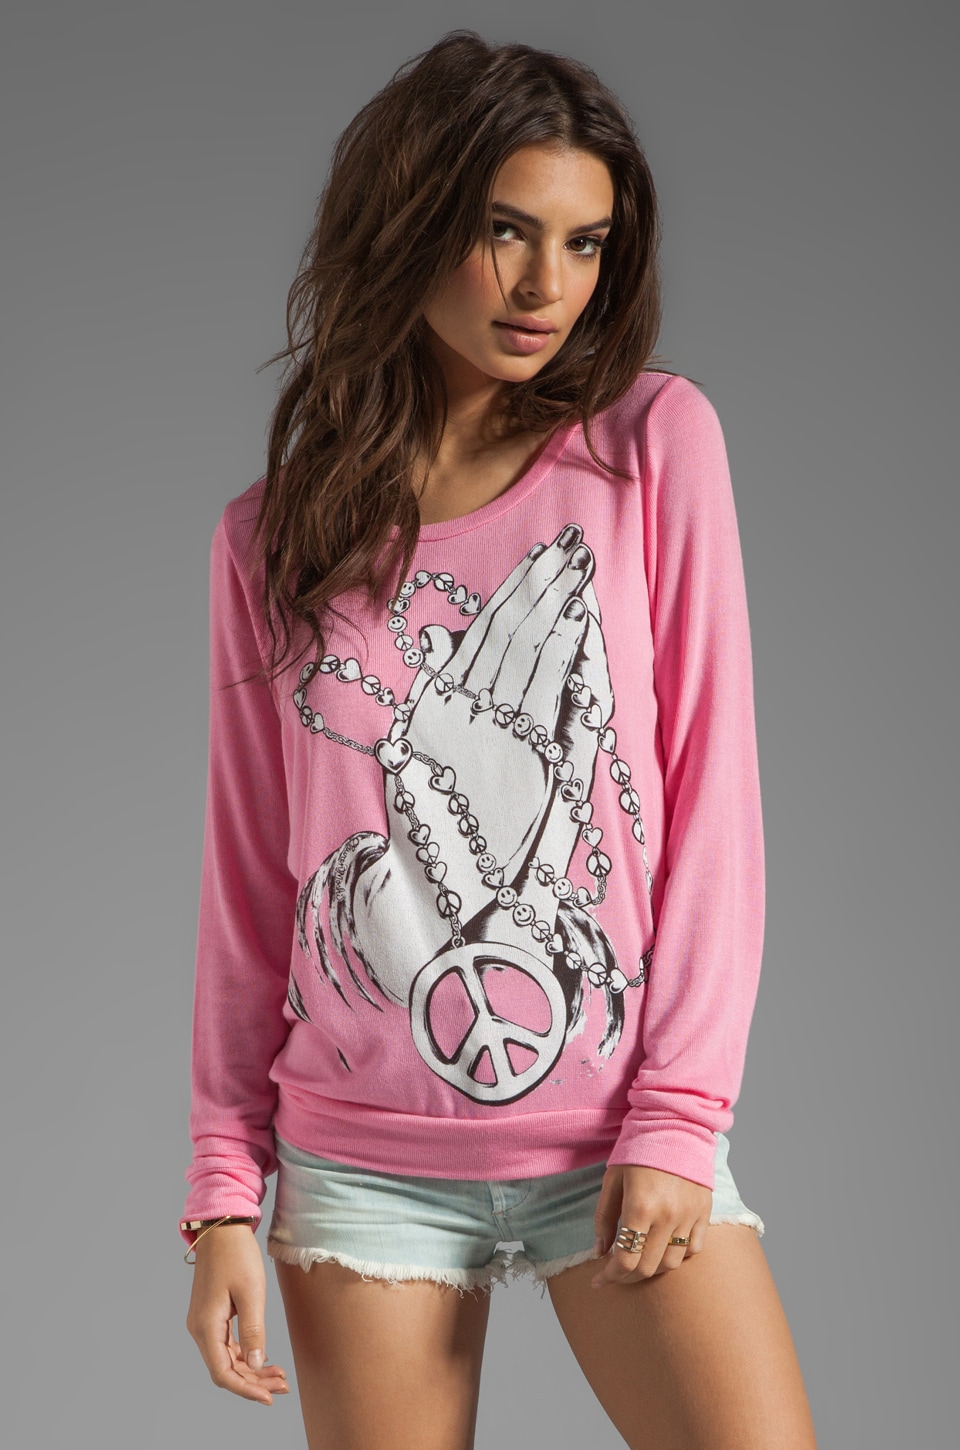 Lauren Moshi Addison 4 Peace Sweater in Malibu Pink